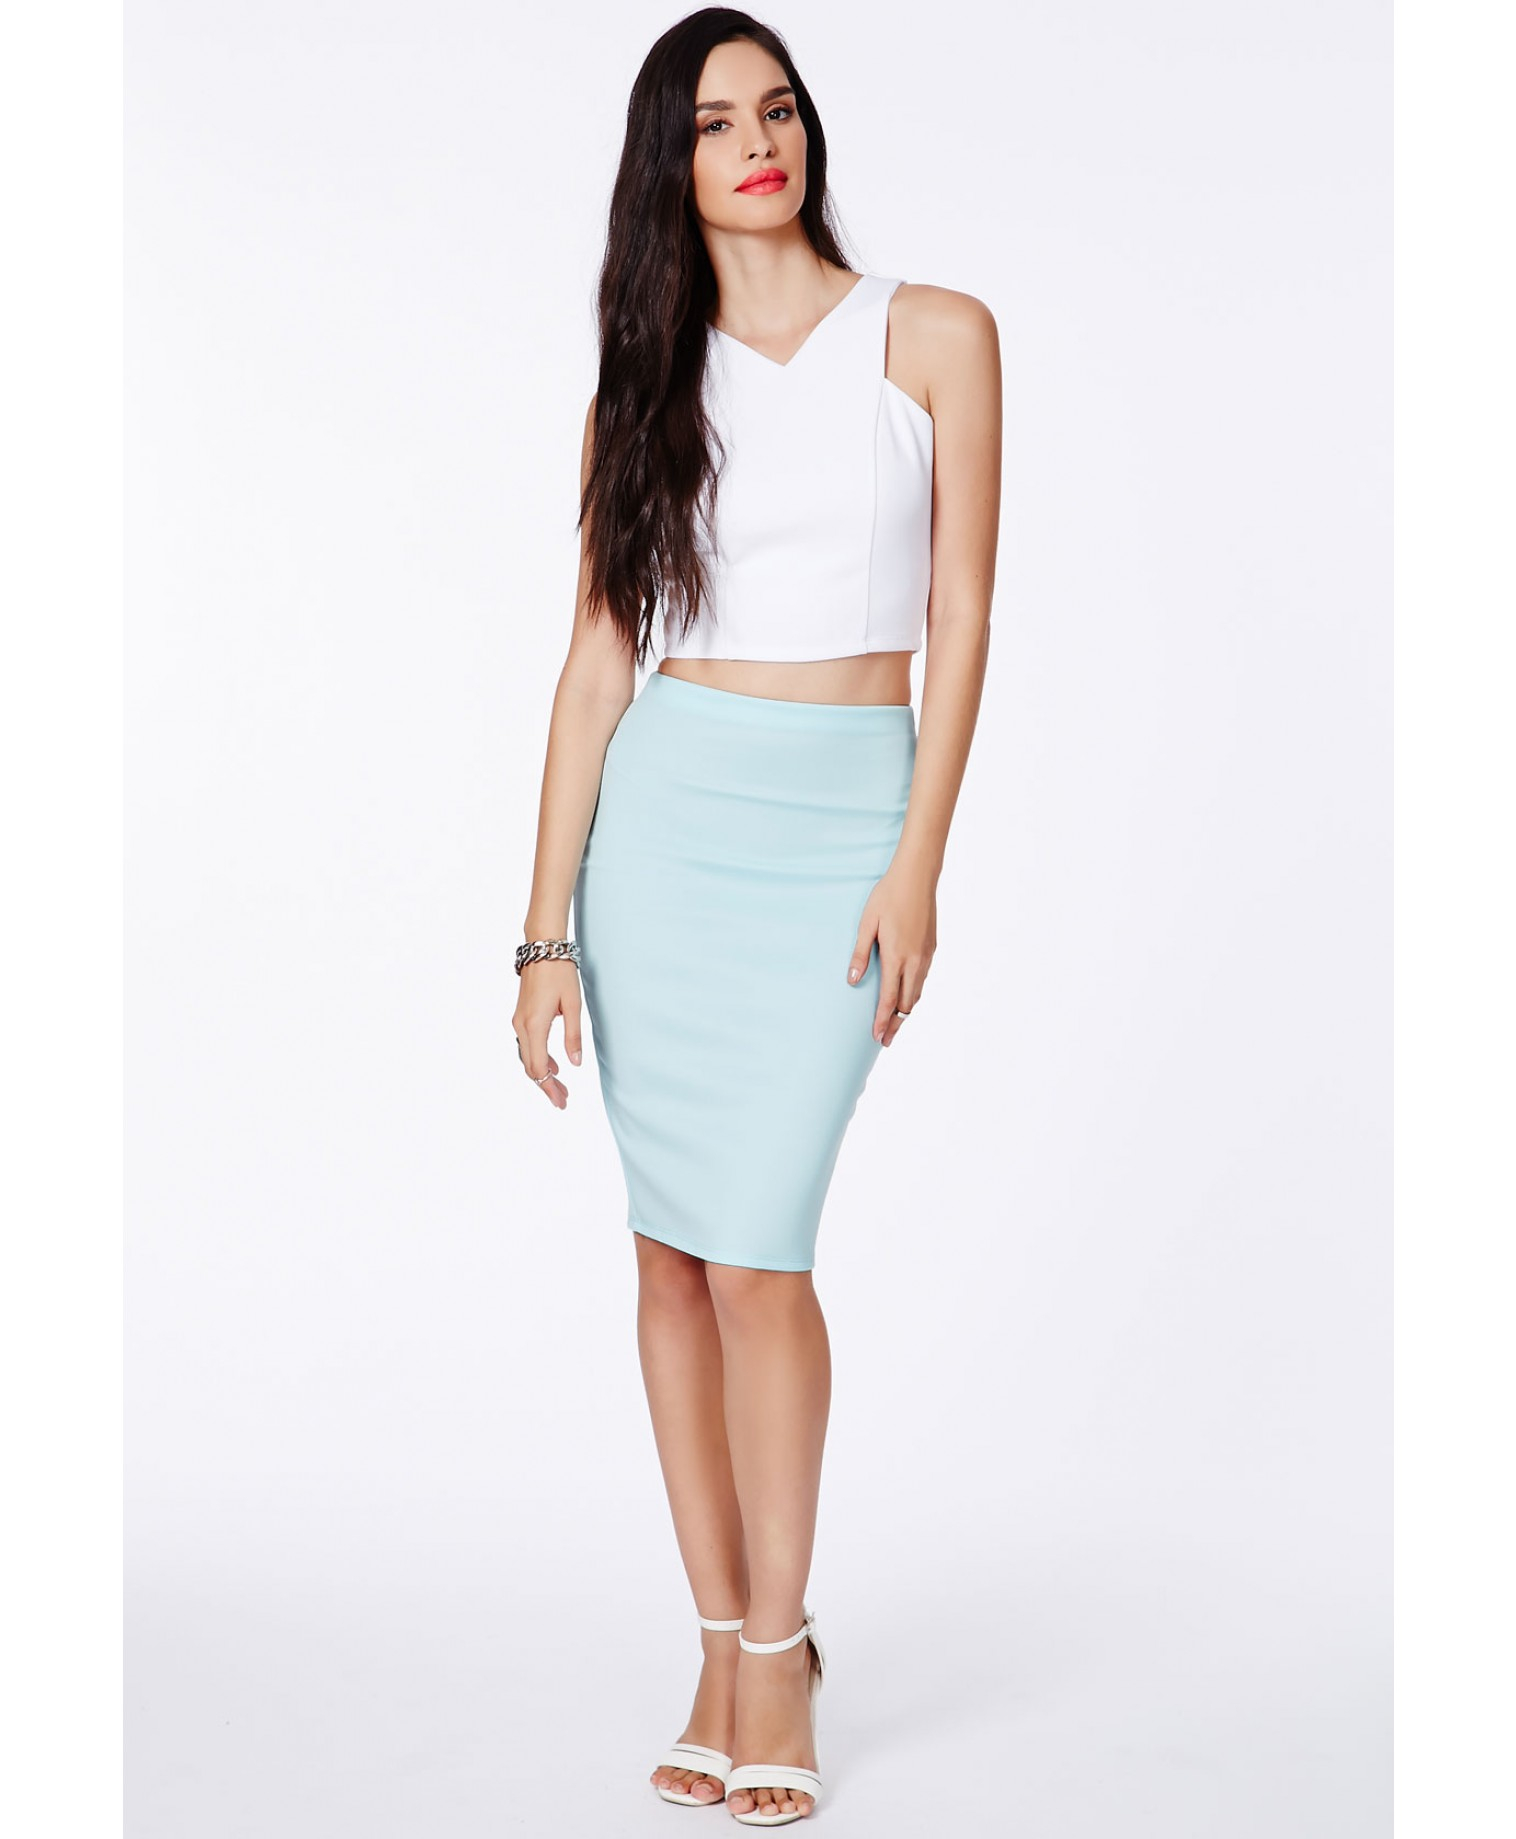 Missguided Candace Baby Blue Scuba Midi Skirt in Blue | Lyst